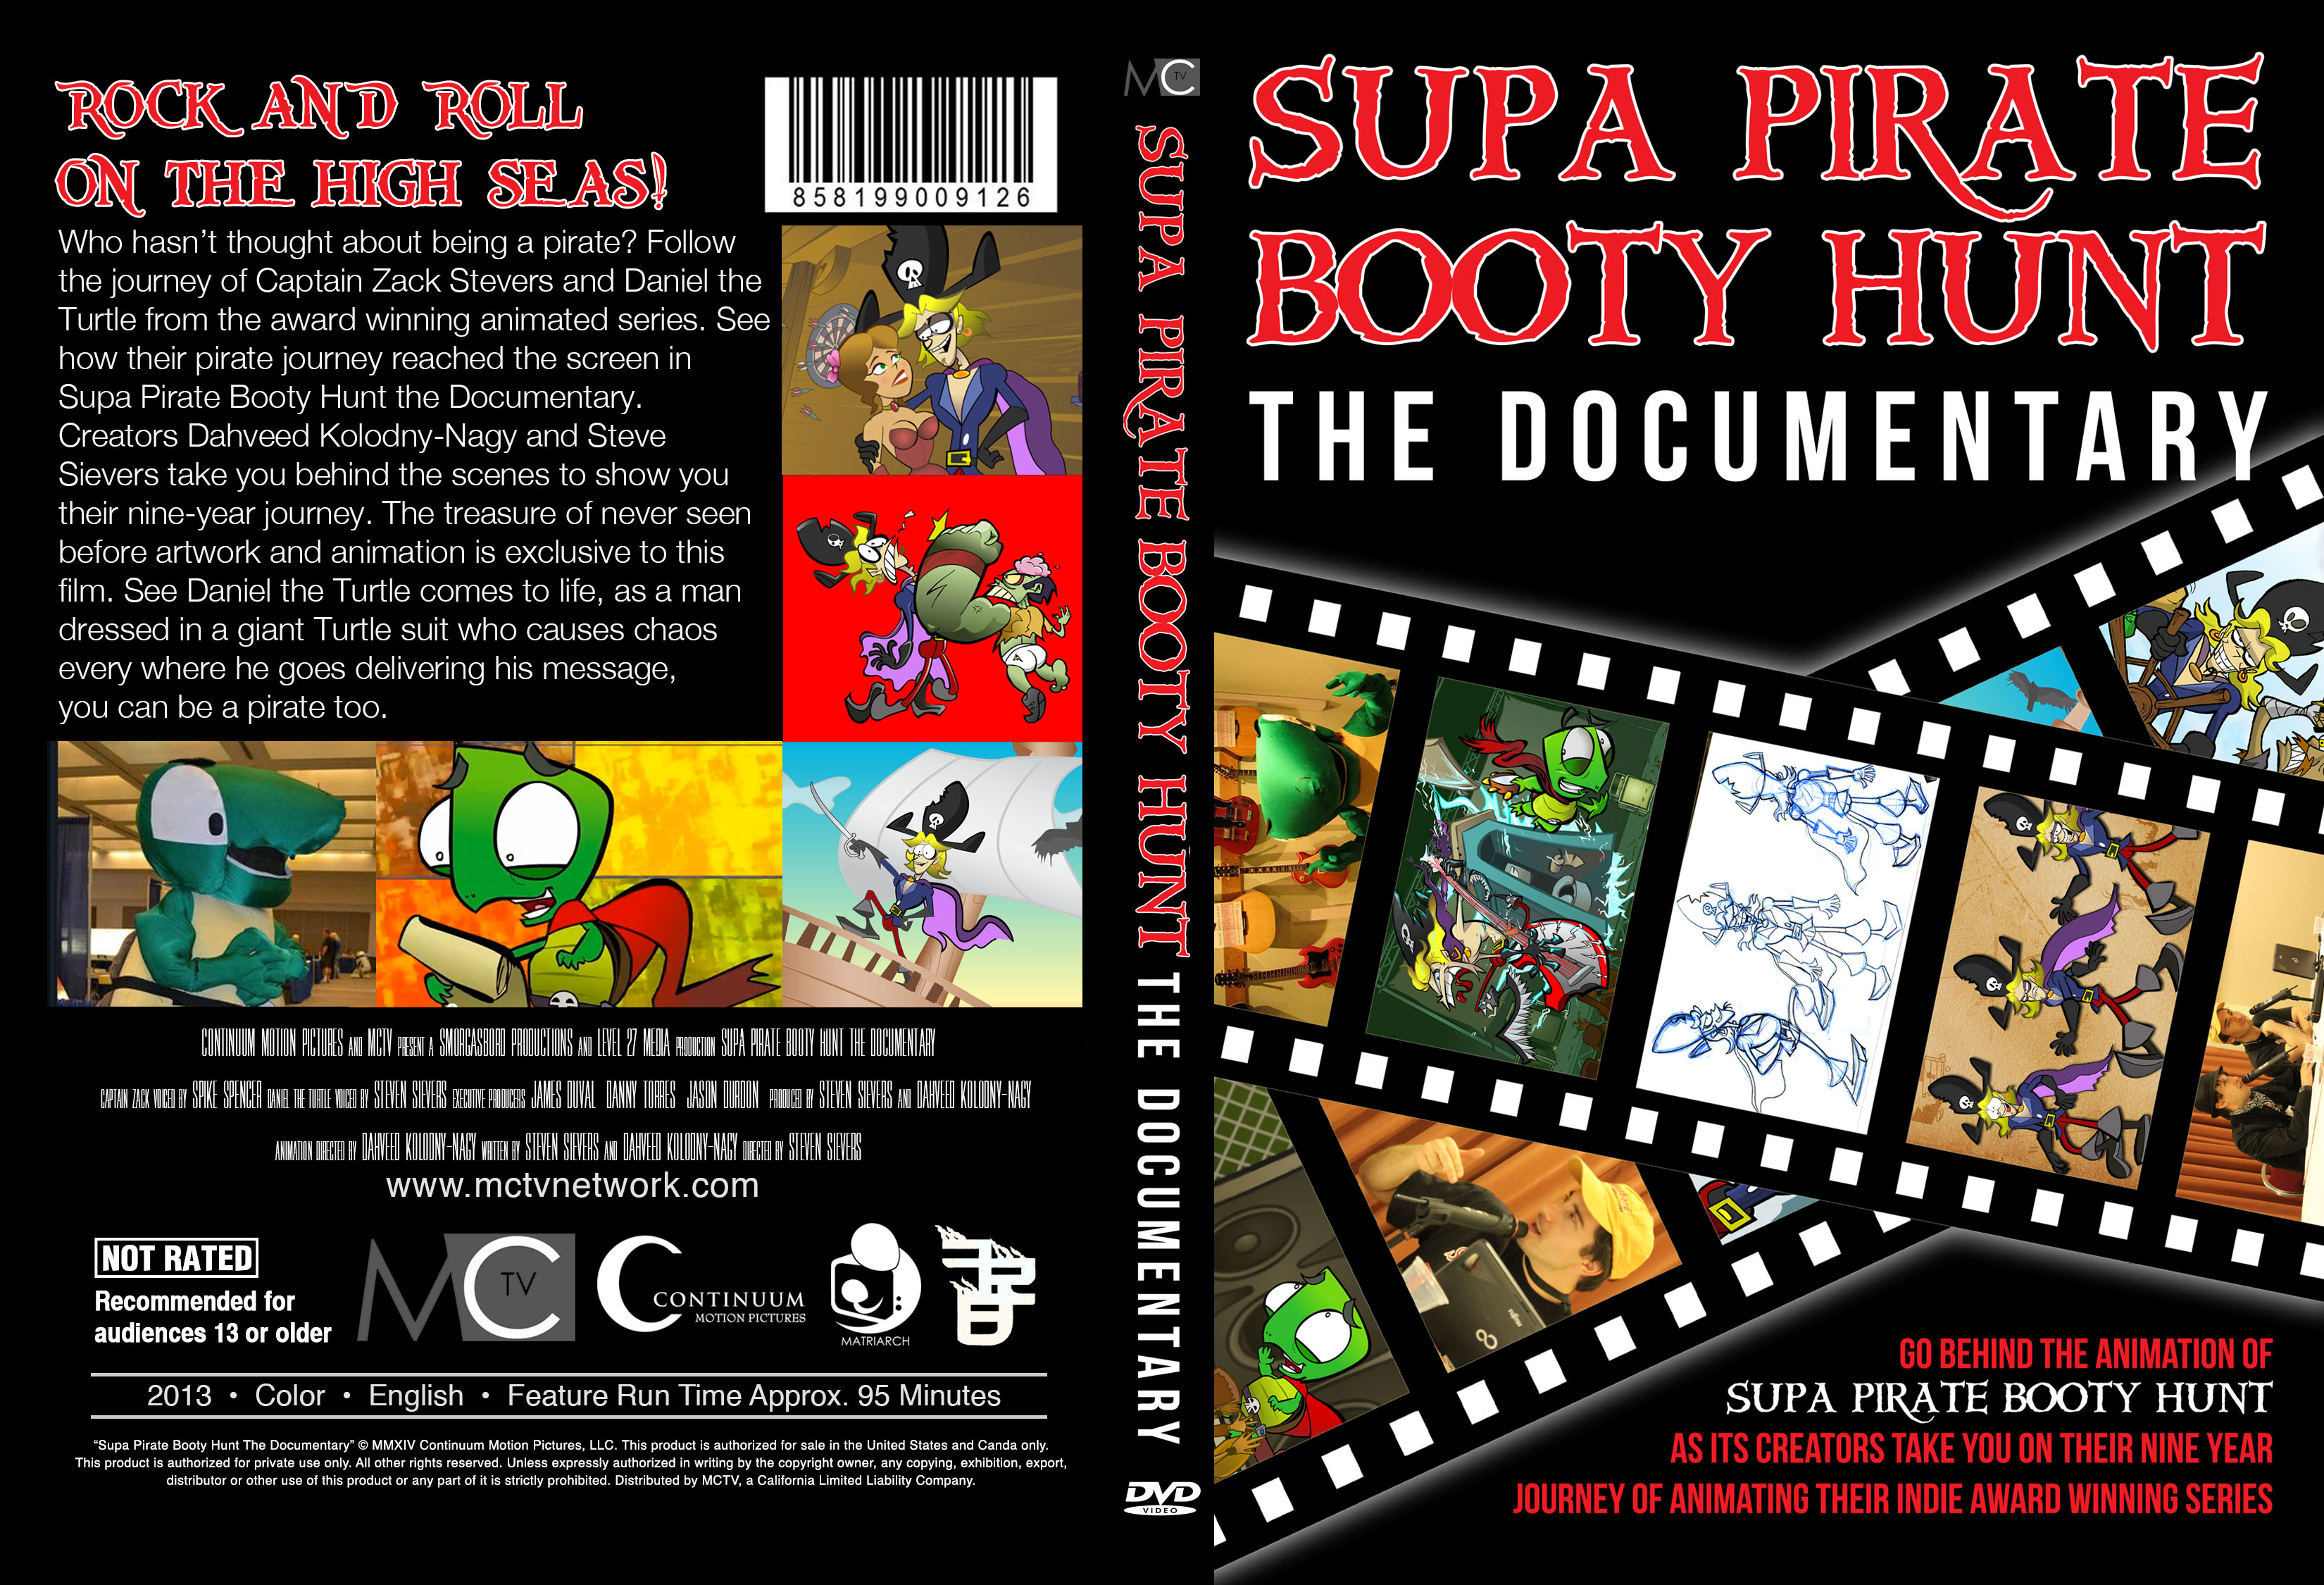 SPBH DOC DVD FOR SALE ACROSS THE COUNTRY